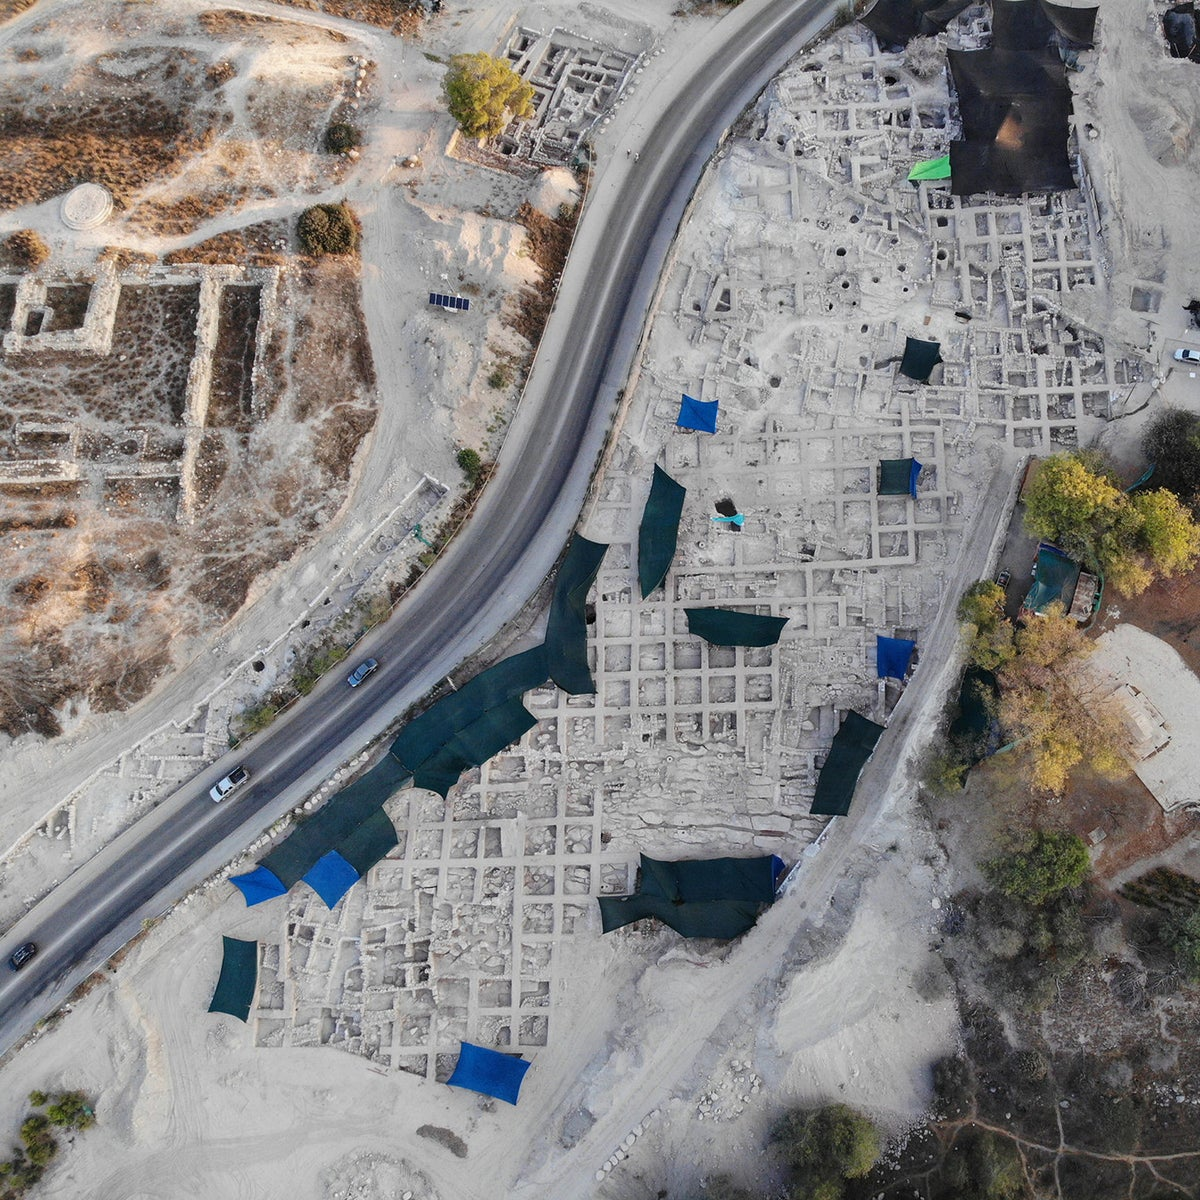 The excavations along either side of Route 38, at Tell Beit Shemesh